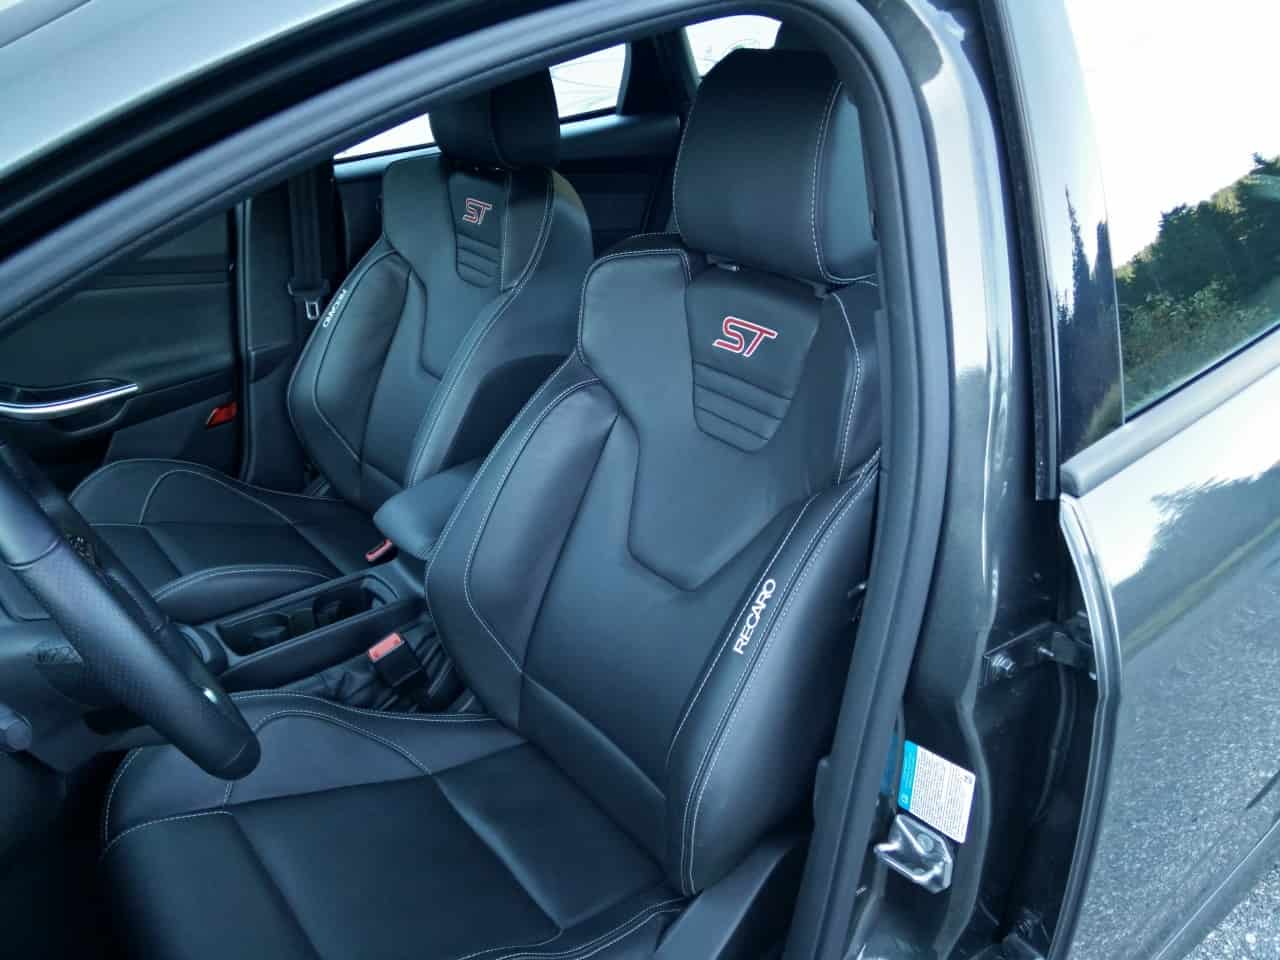 ford focus st interior photo gallery image 1001